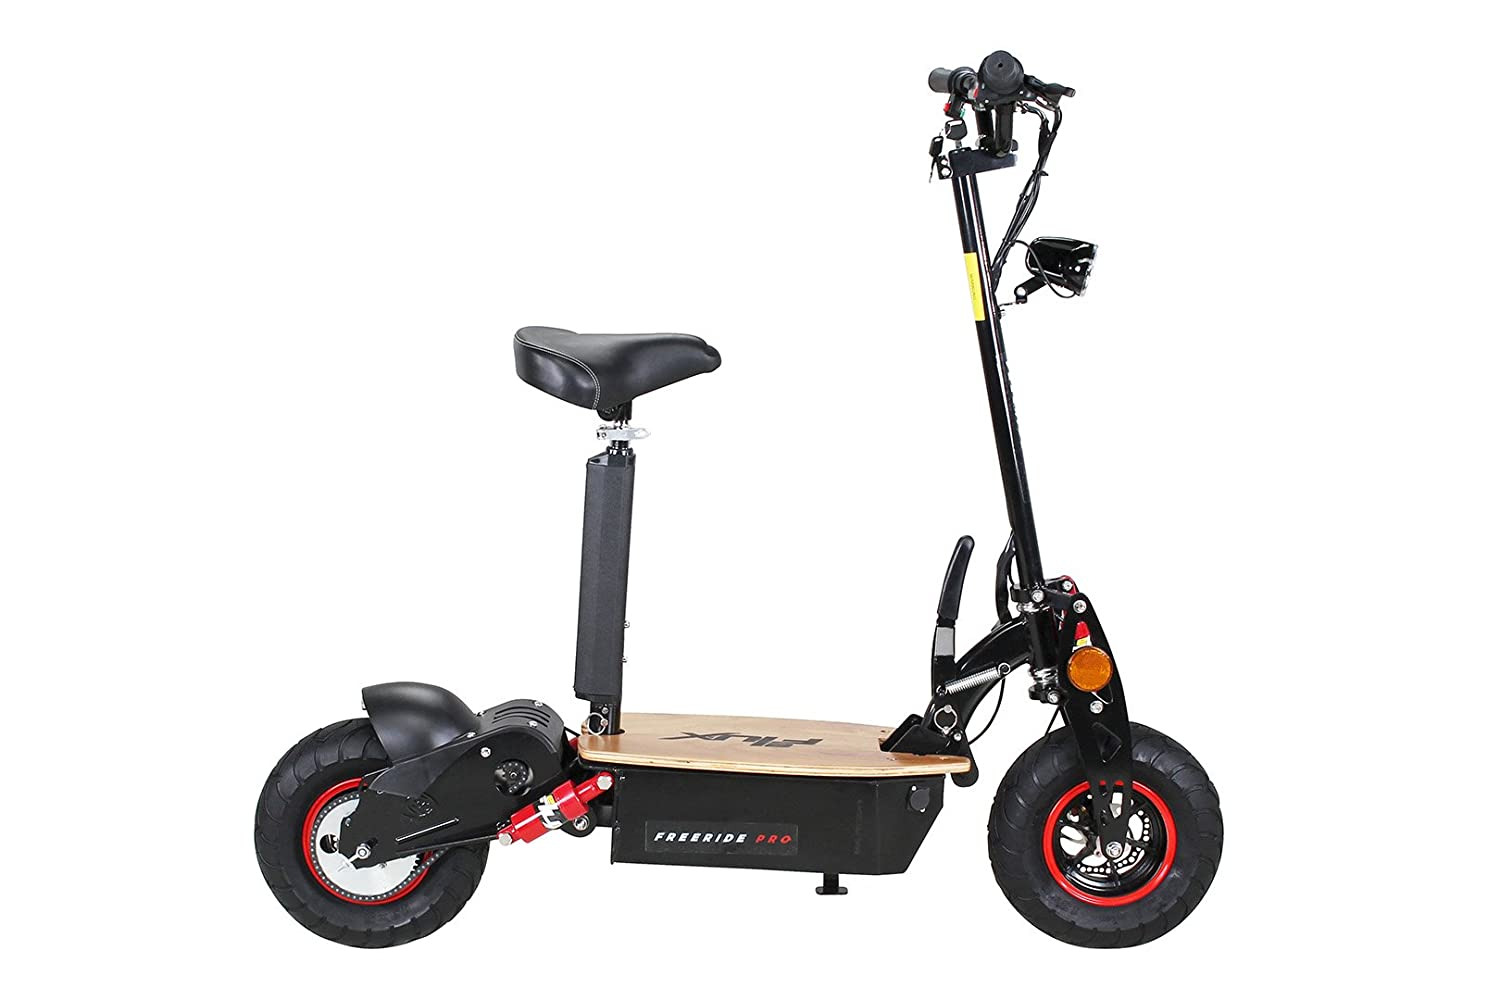 E-Scooter Roller Original E-Flux Freeride PRO 1600 Watt 48 V ...